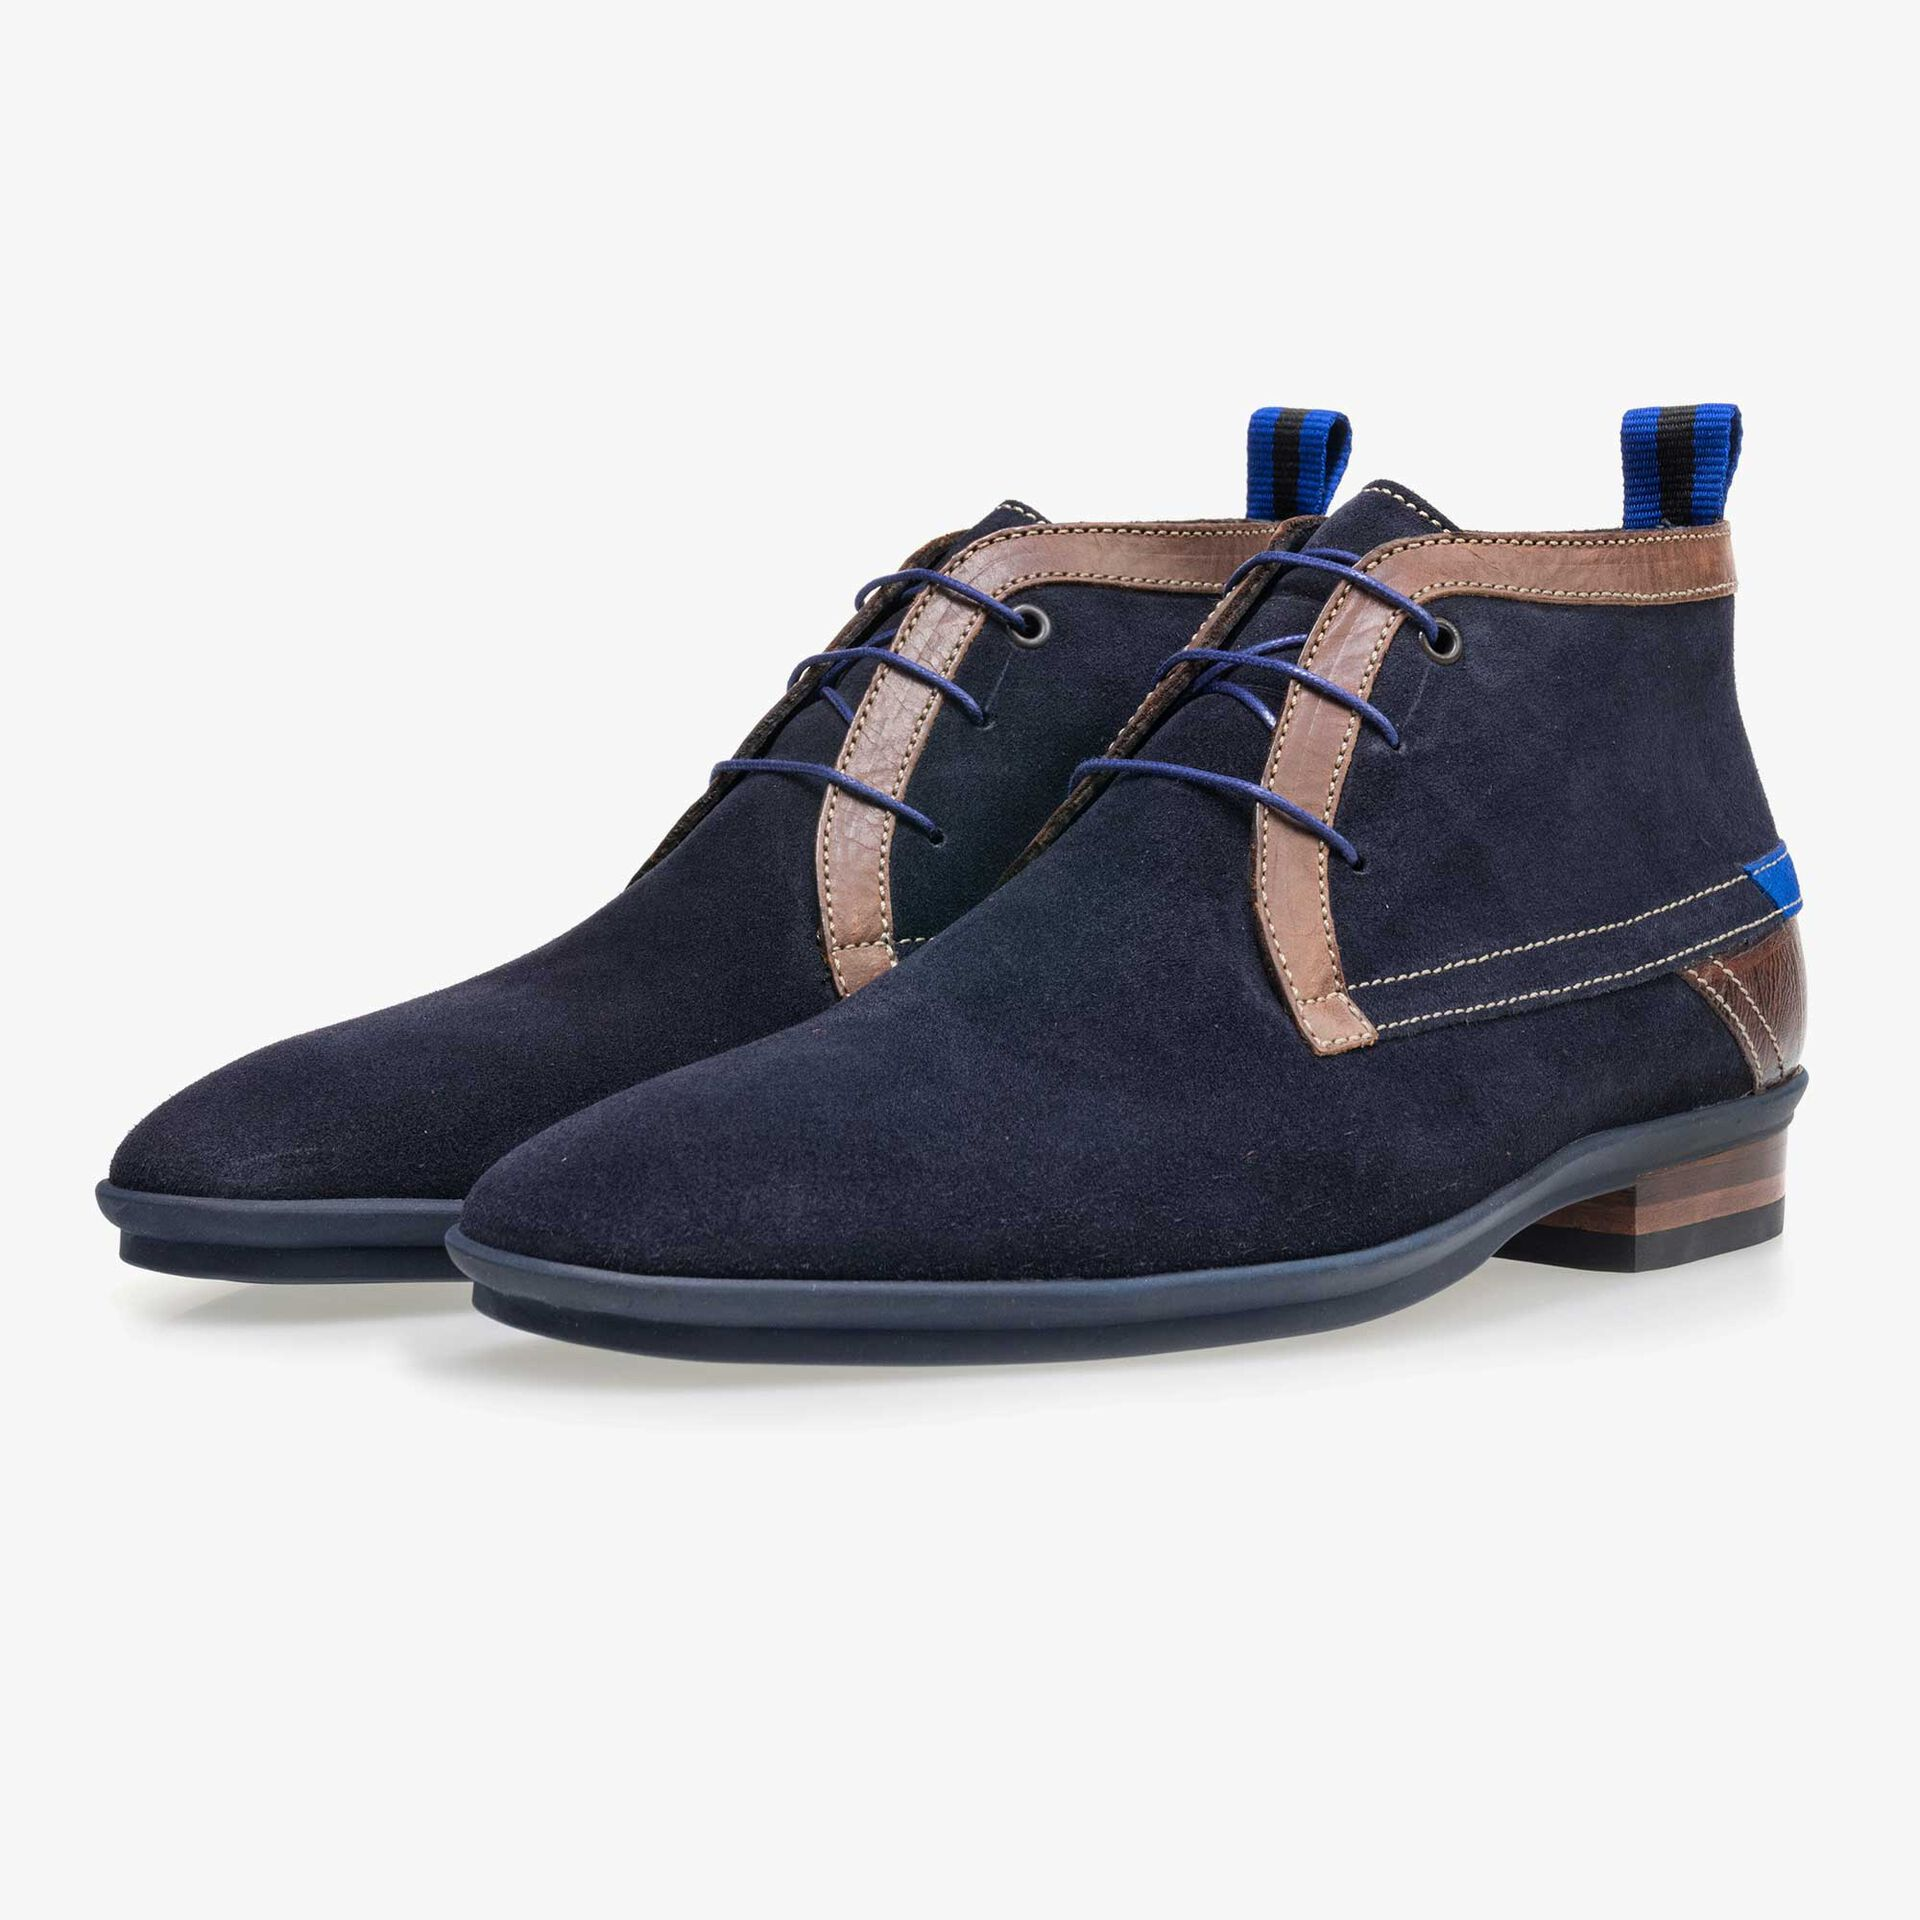 Dark blue mid-high suede leather lace boot